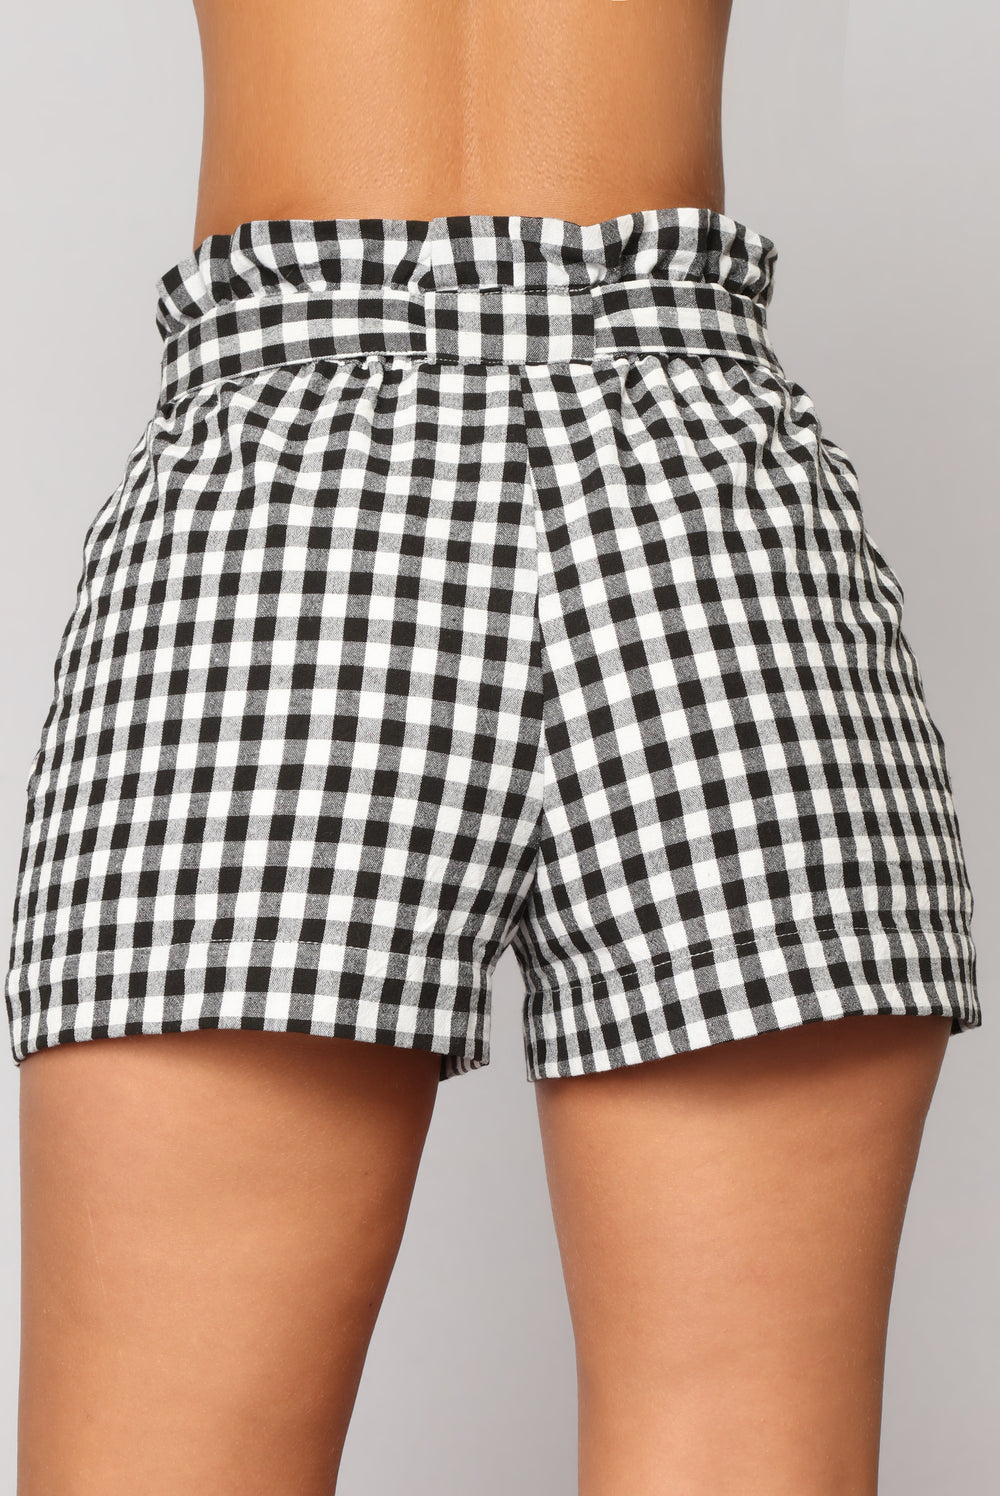 Perfect Weather Gingham Shorts - Black